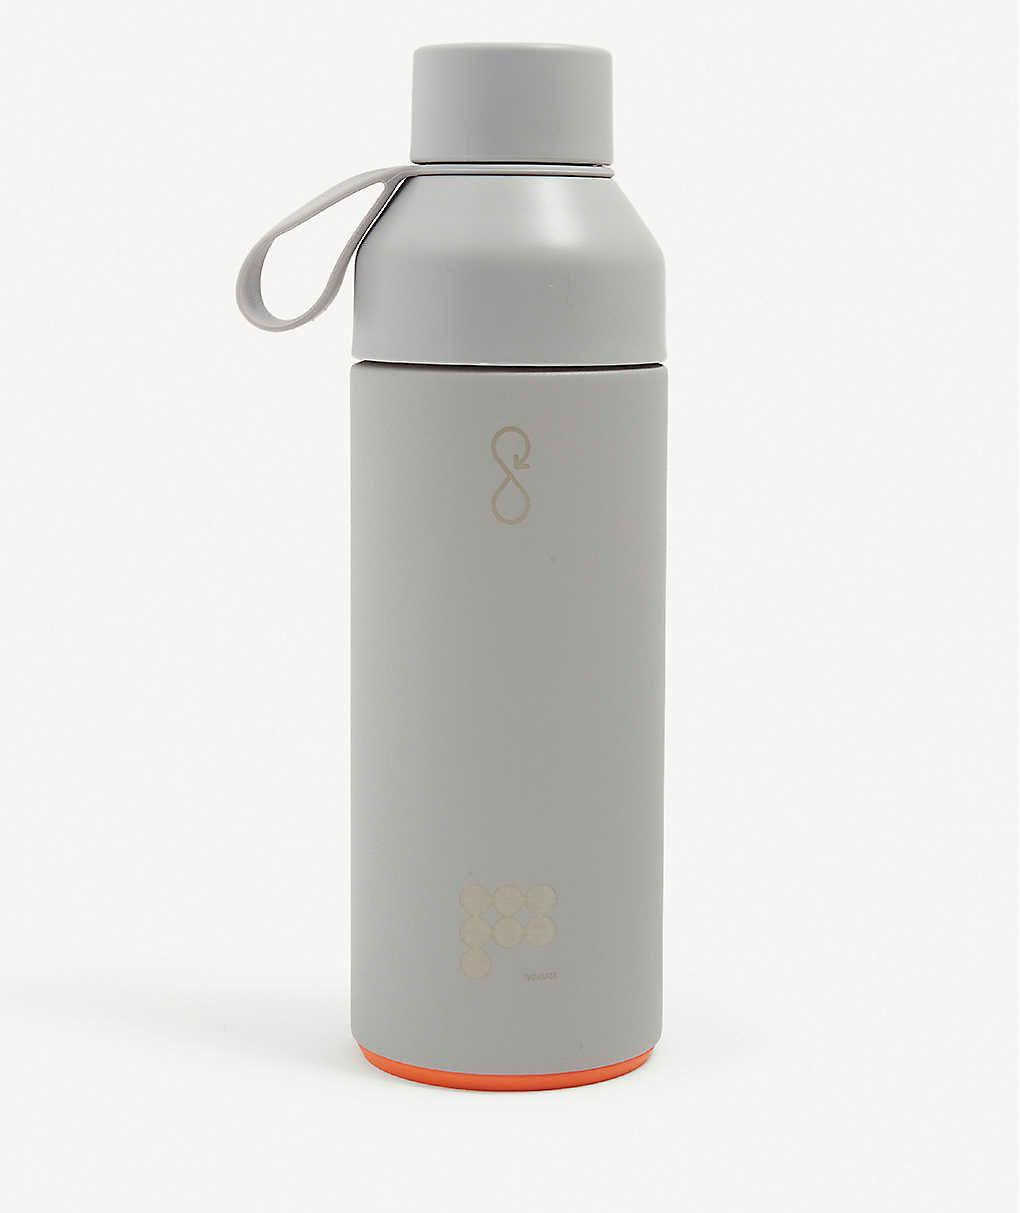 Ocean Bottle x Pangaia text-print recycled stainless-steel and recycled ocean-bound plastic bottle